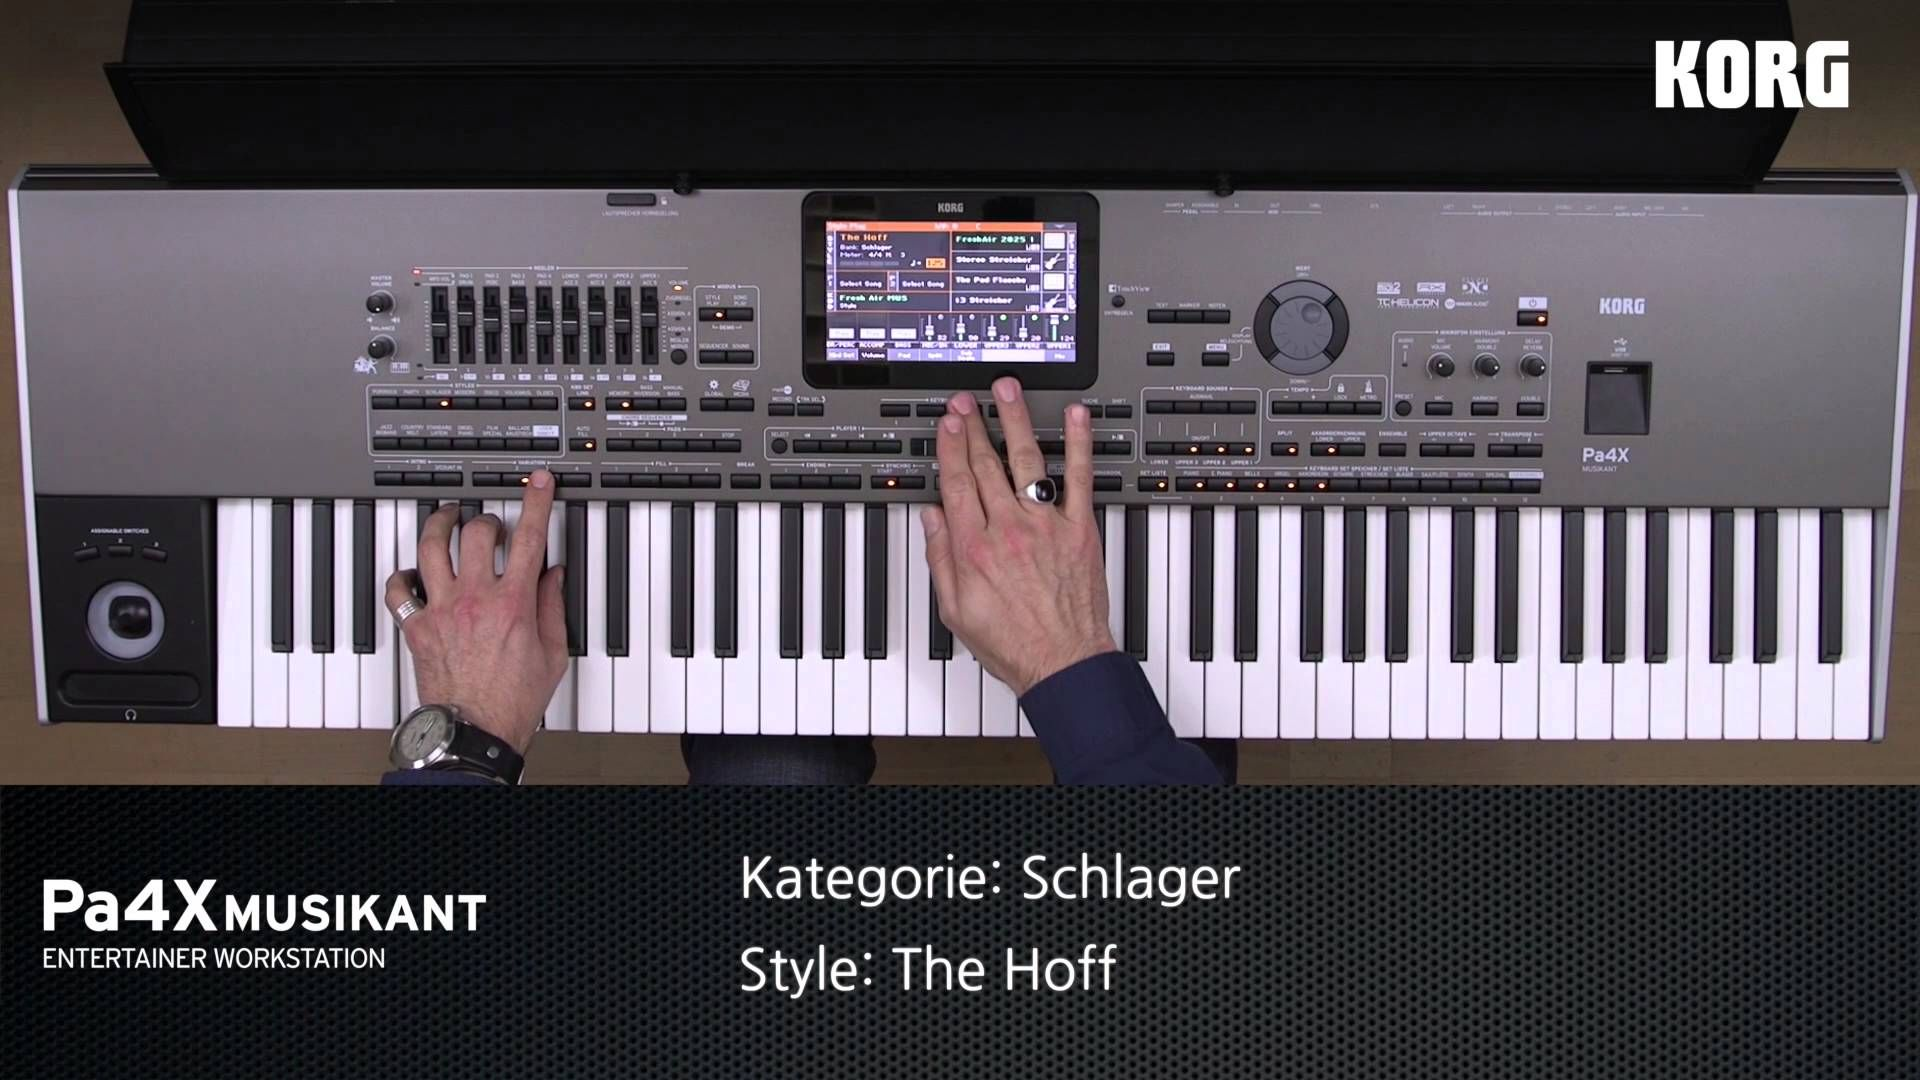 KORG - Pa4X MUSIKANT Style Demos: PARTY & SCHLAGER Styles